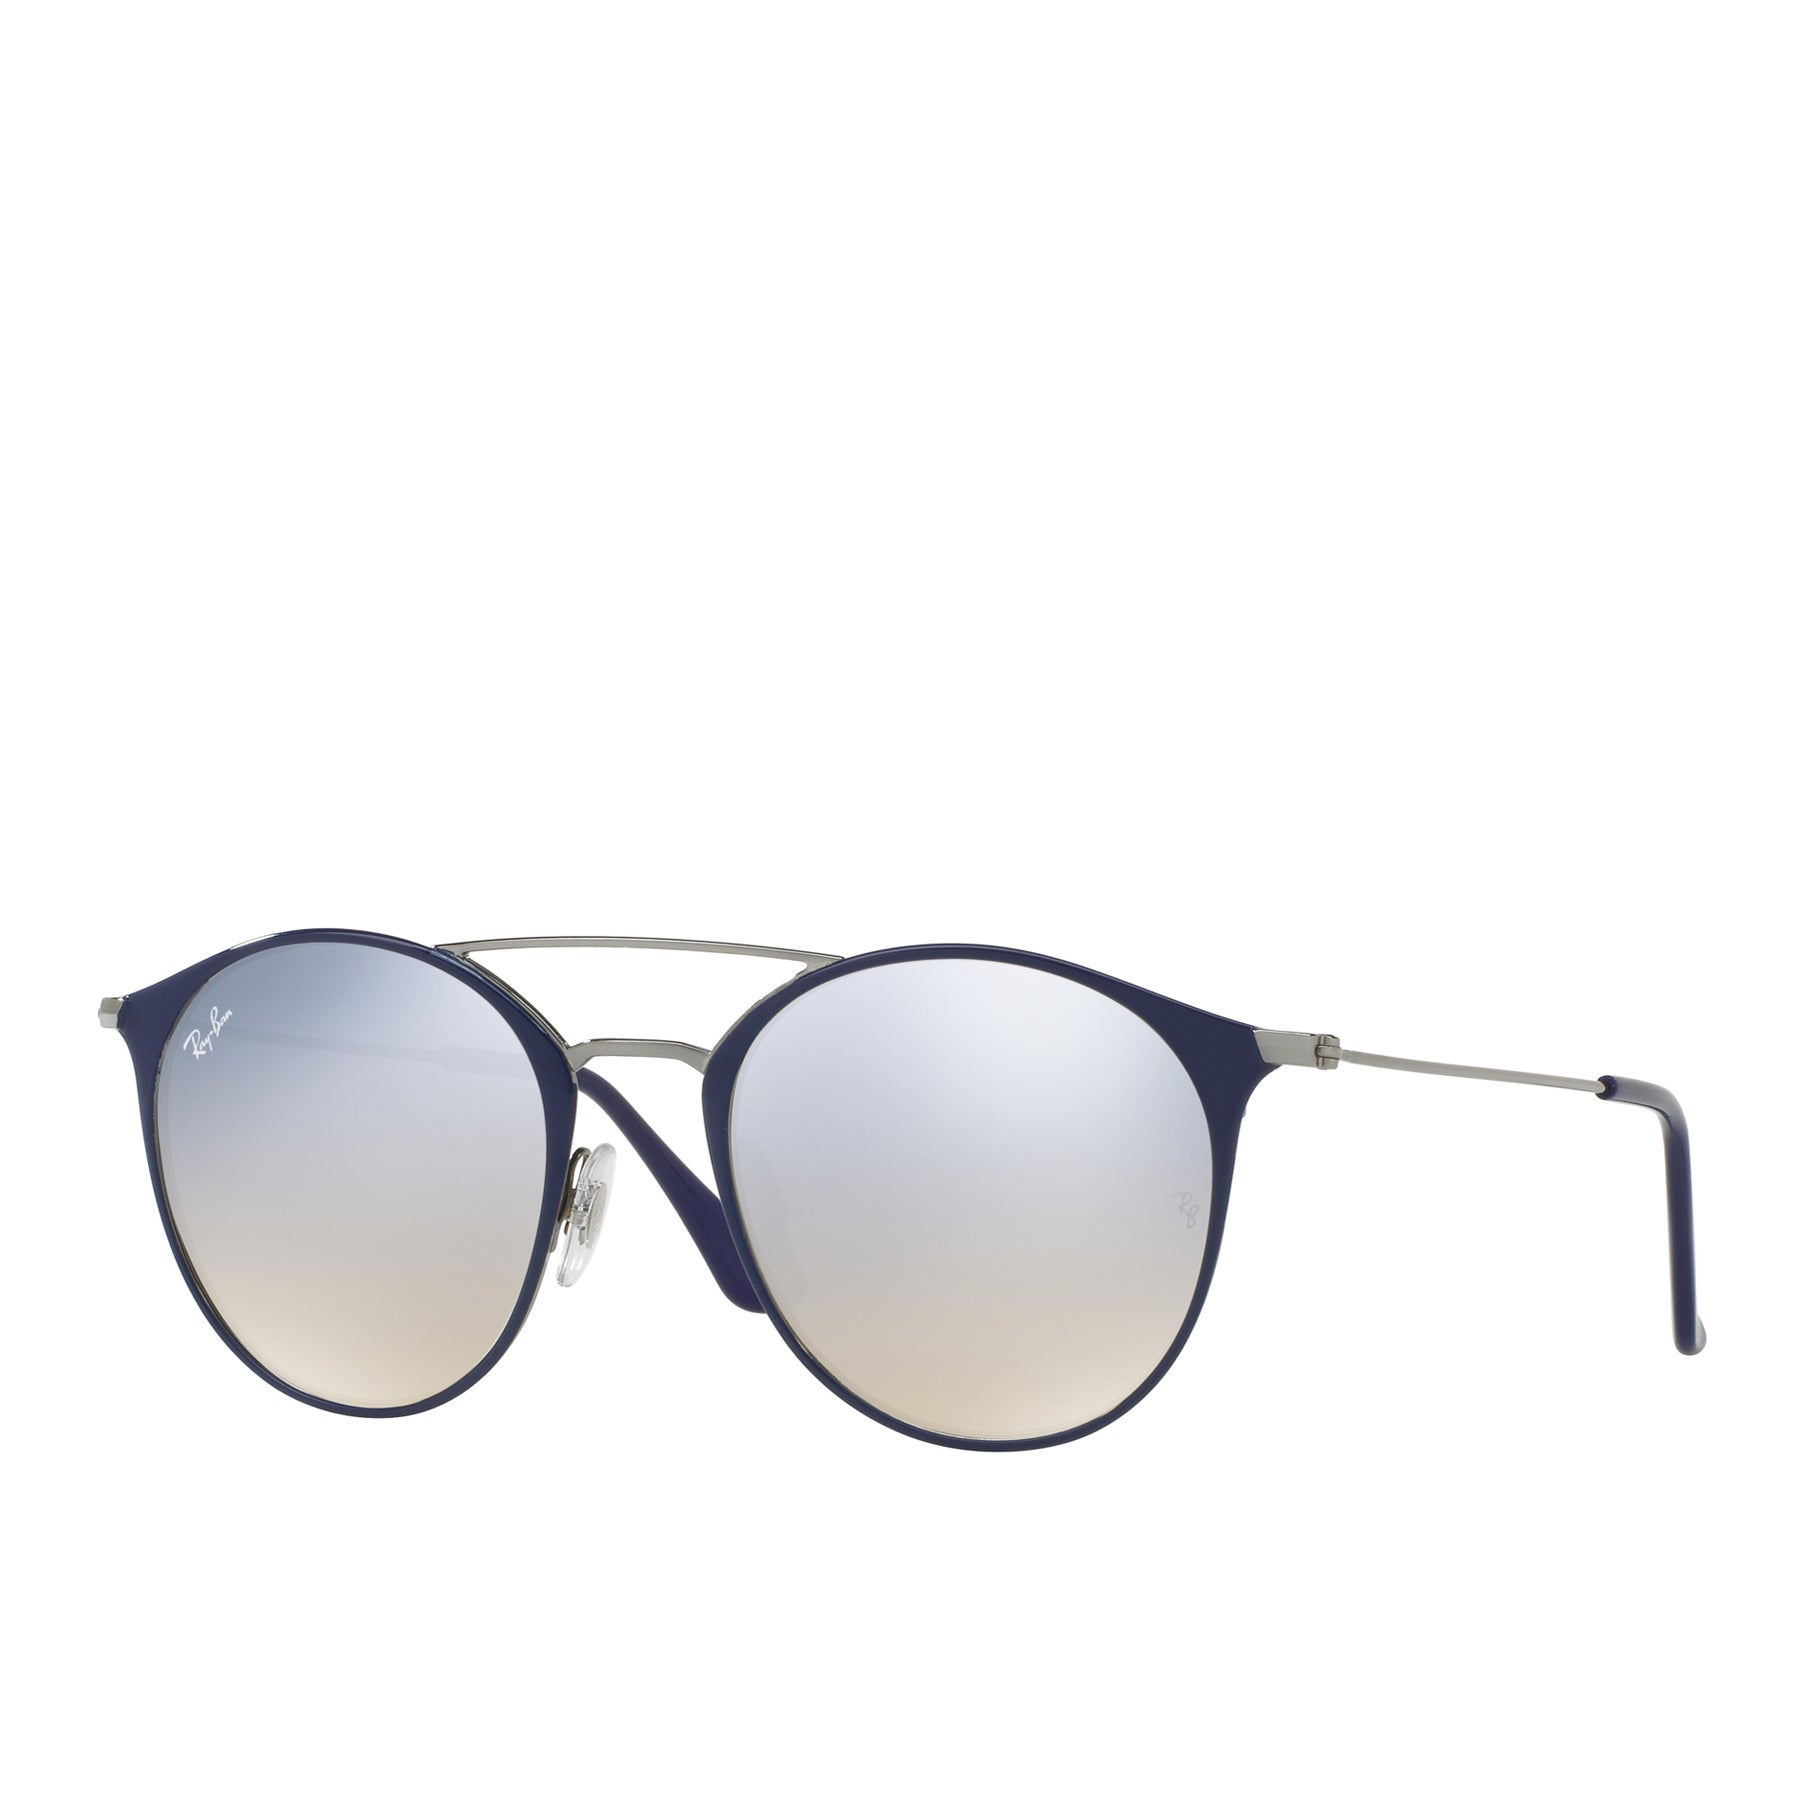 Ray-Ban 3546 Ladies Sunglasses